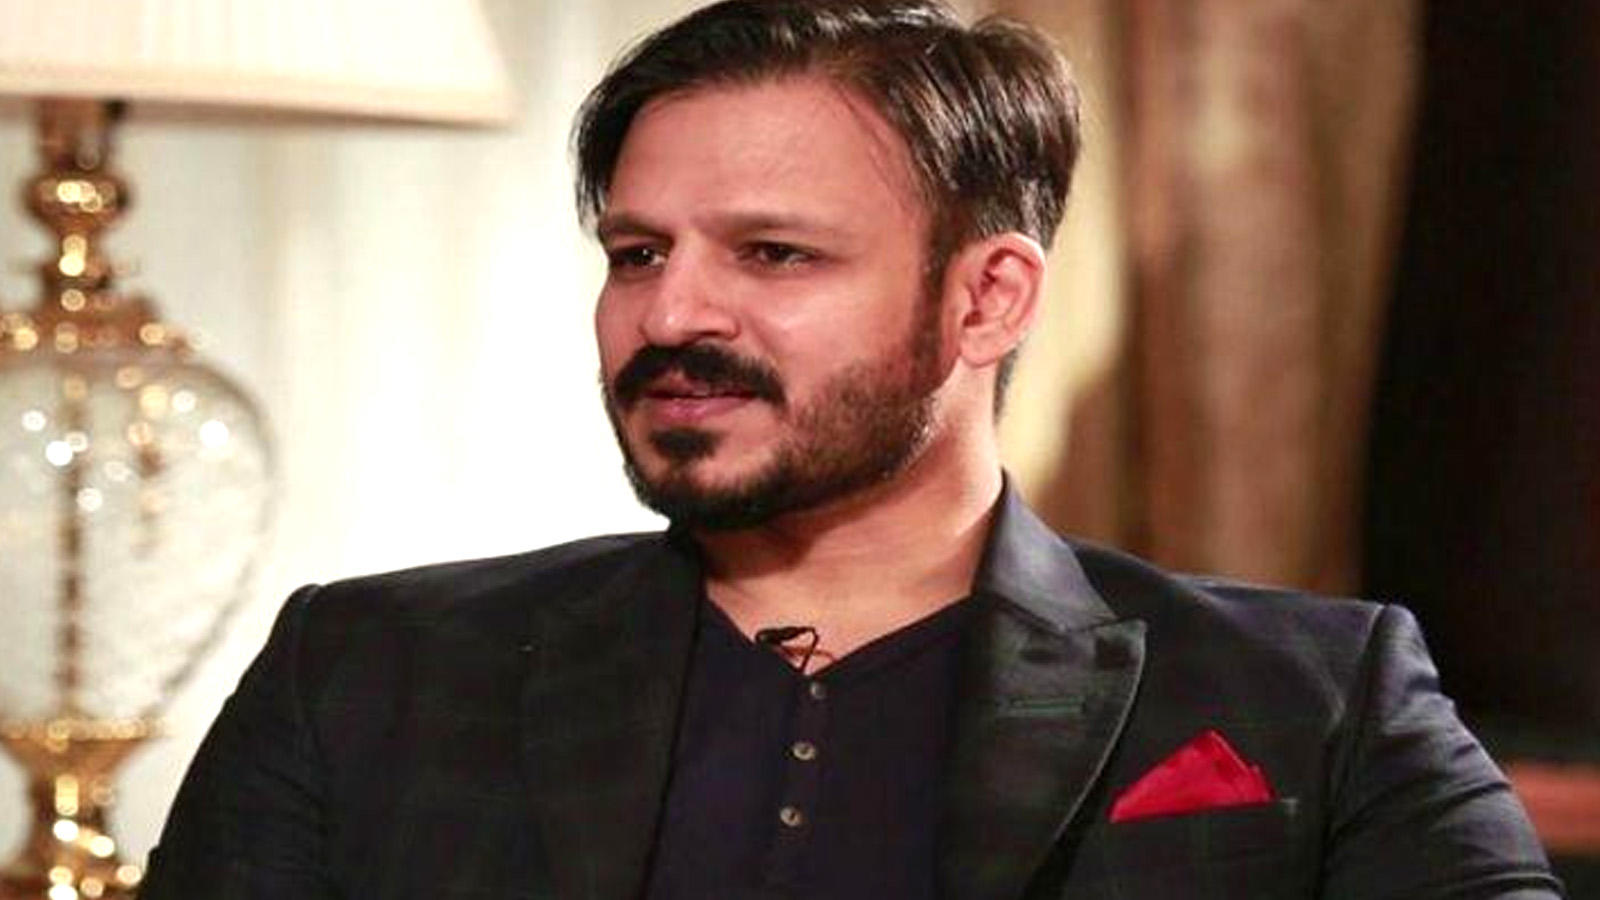 vivek-oberoi-dropped-from-charity-fund-raising-event-after-the-exit-poll-meme-debacle